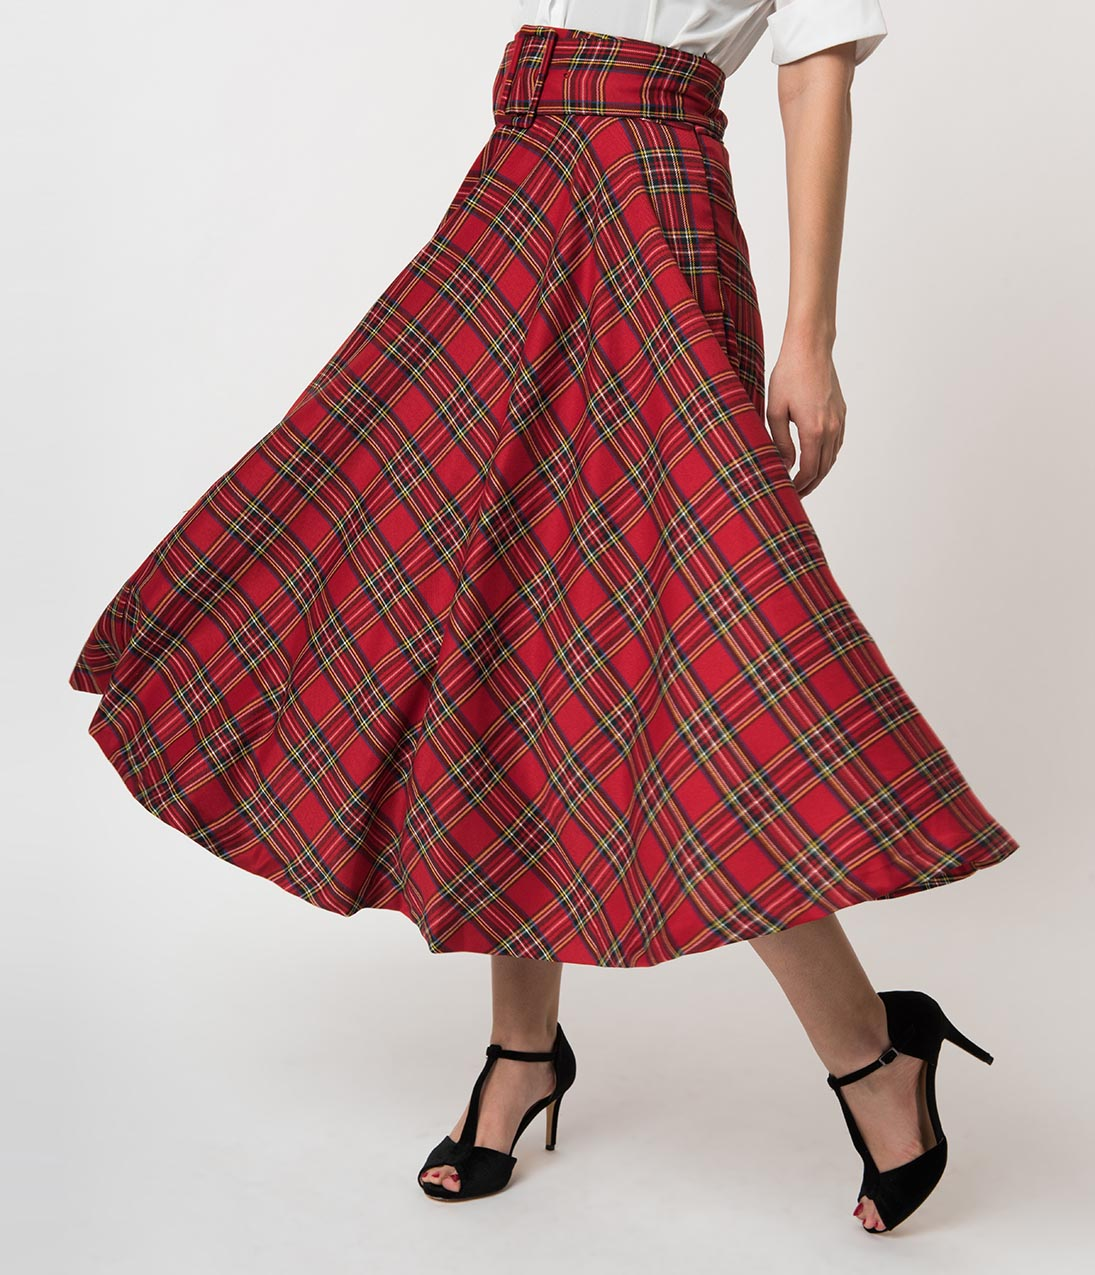 50s Skirt Styles | Poodle Skirts, Circle Skirts, Pencil Skirts Vintage Style Red Cotton Plaid Belted High Waist Midi Skirt $52.00 AT vintagedancer.com